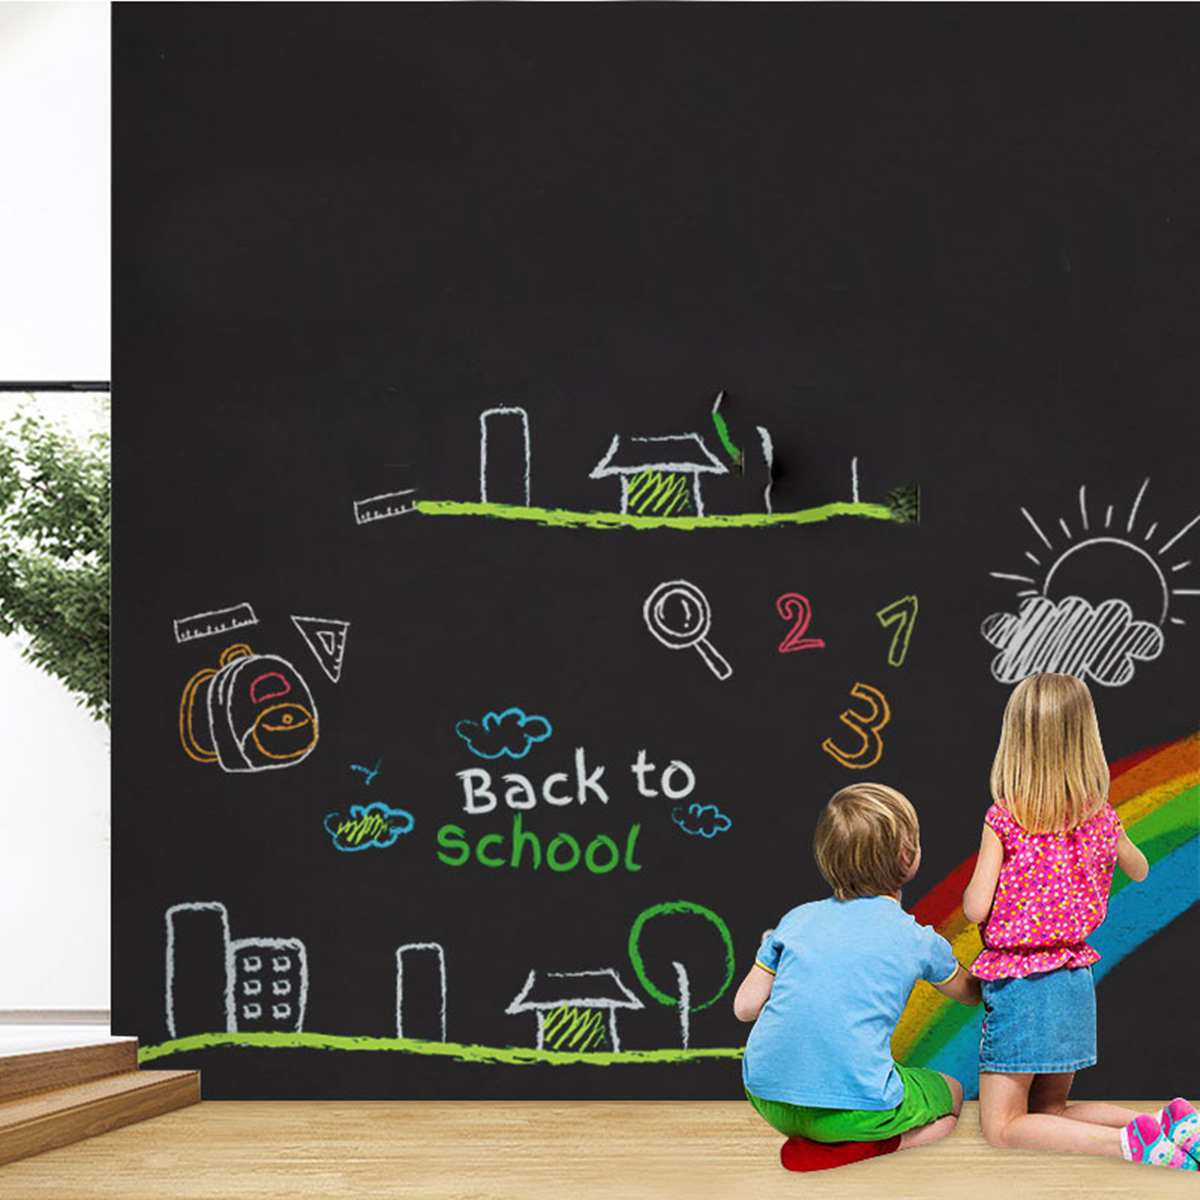 45X100cm Wall Stickers Office Presentation Boards Whiteboard Chalk Drawing Self-adhesive Blackboard Stickers Children Graffiti